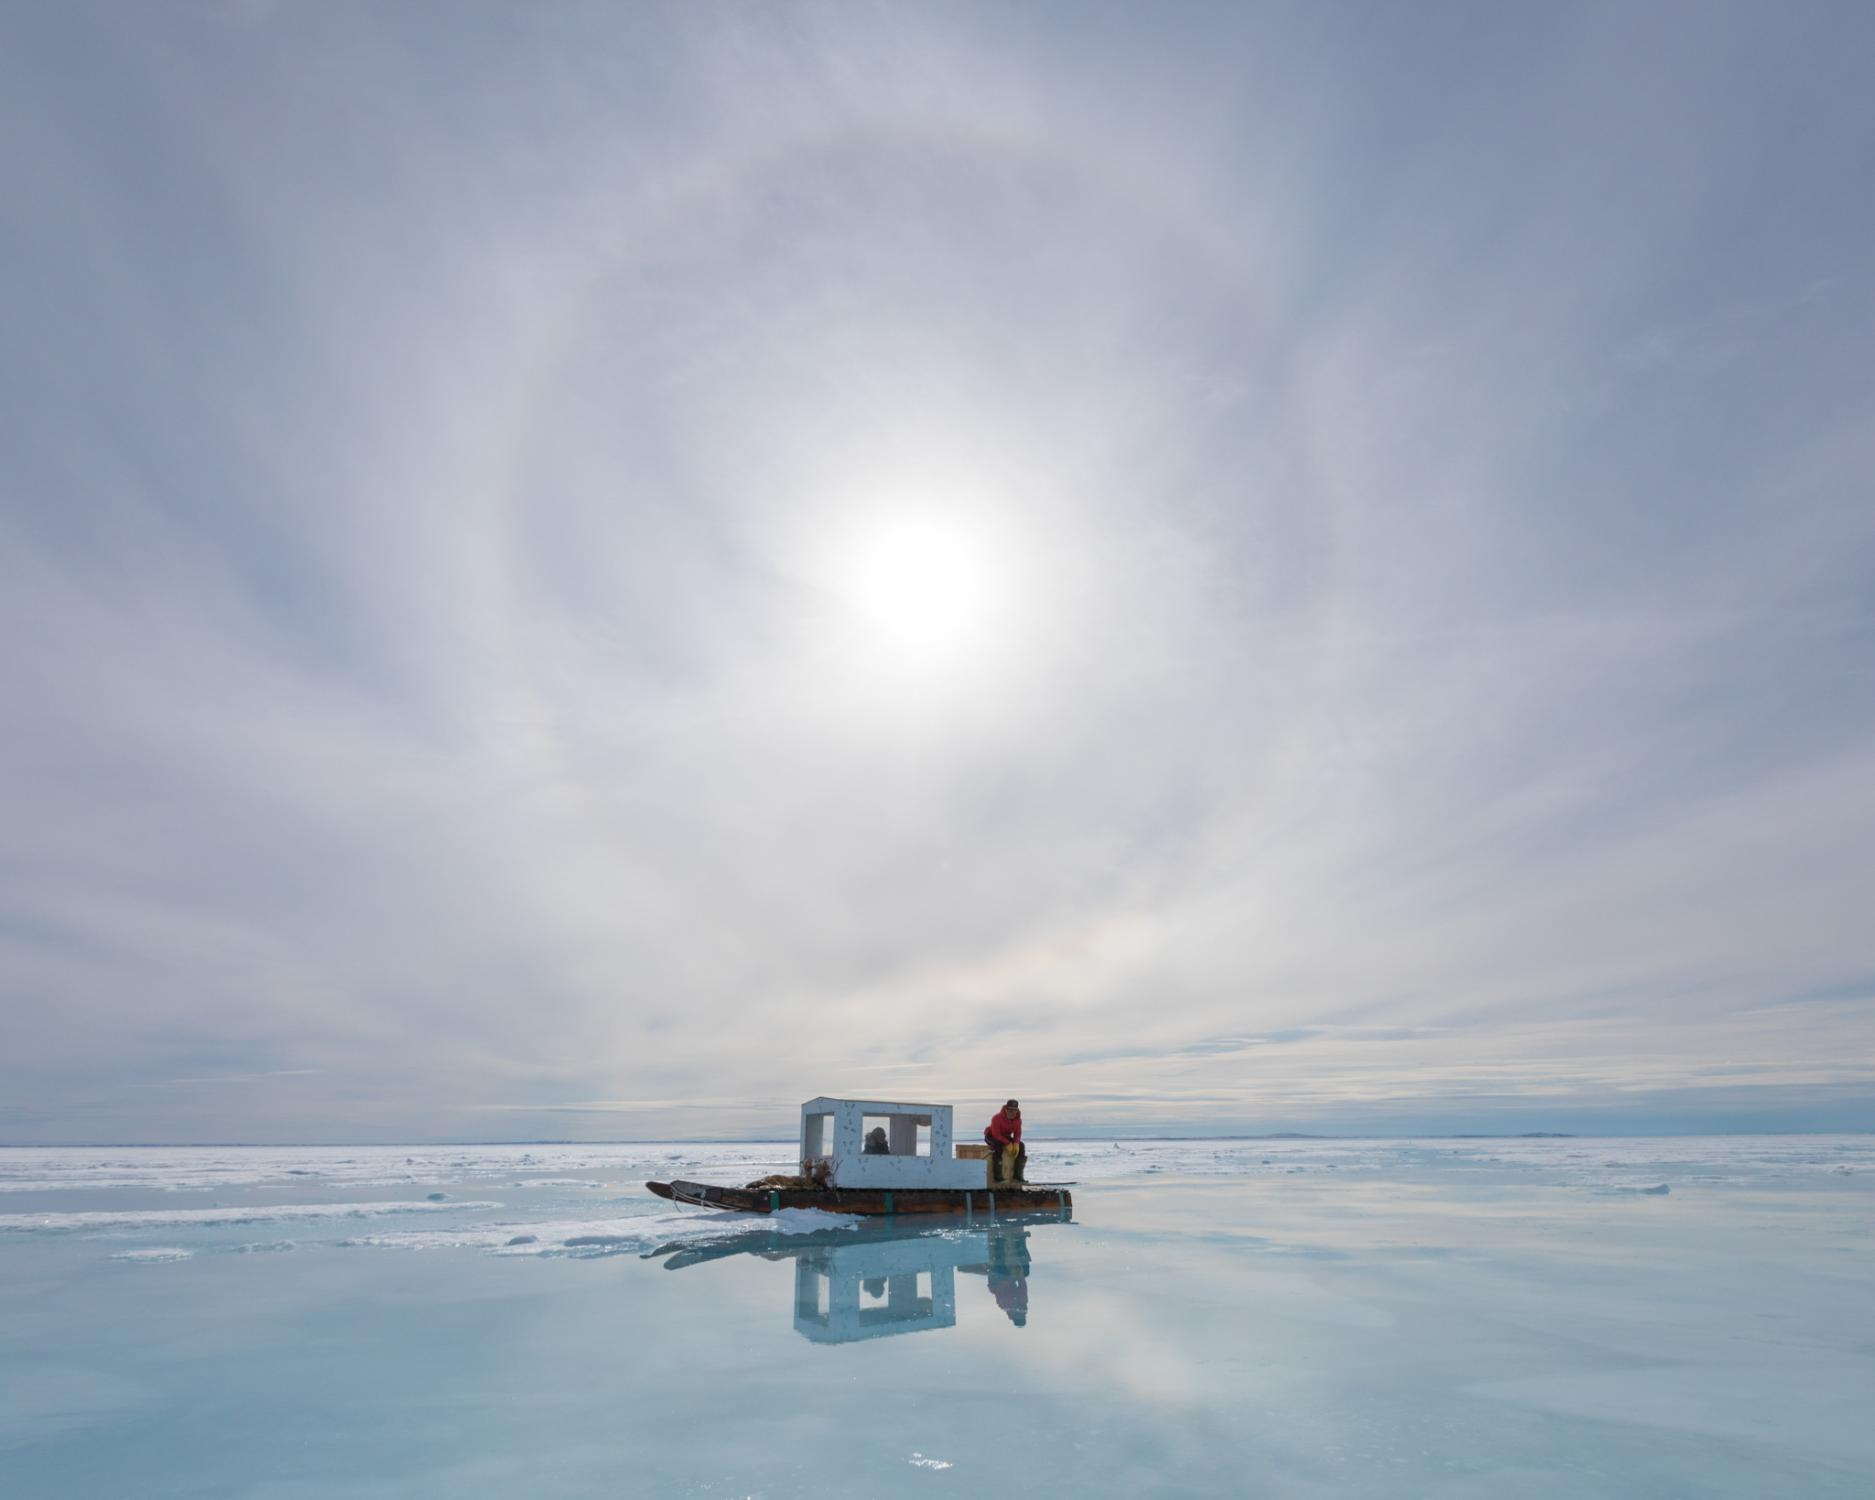 As a sun halo reflects off the sea ice, Owen Willie, 18, waits with his mother Darlene on their family's qamutik during a seal-hunting trip. Ringed seals, which each have a network of breathing holes in the surface of the sea ice, are sensitive to noise - any footsteps too near to a breathing hole can scare them away.